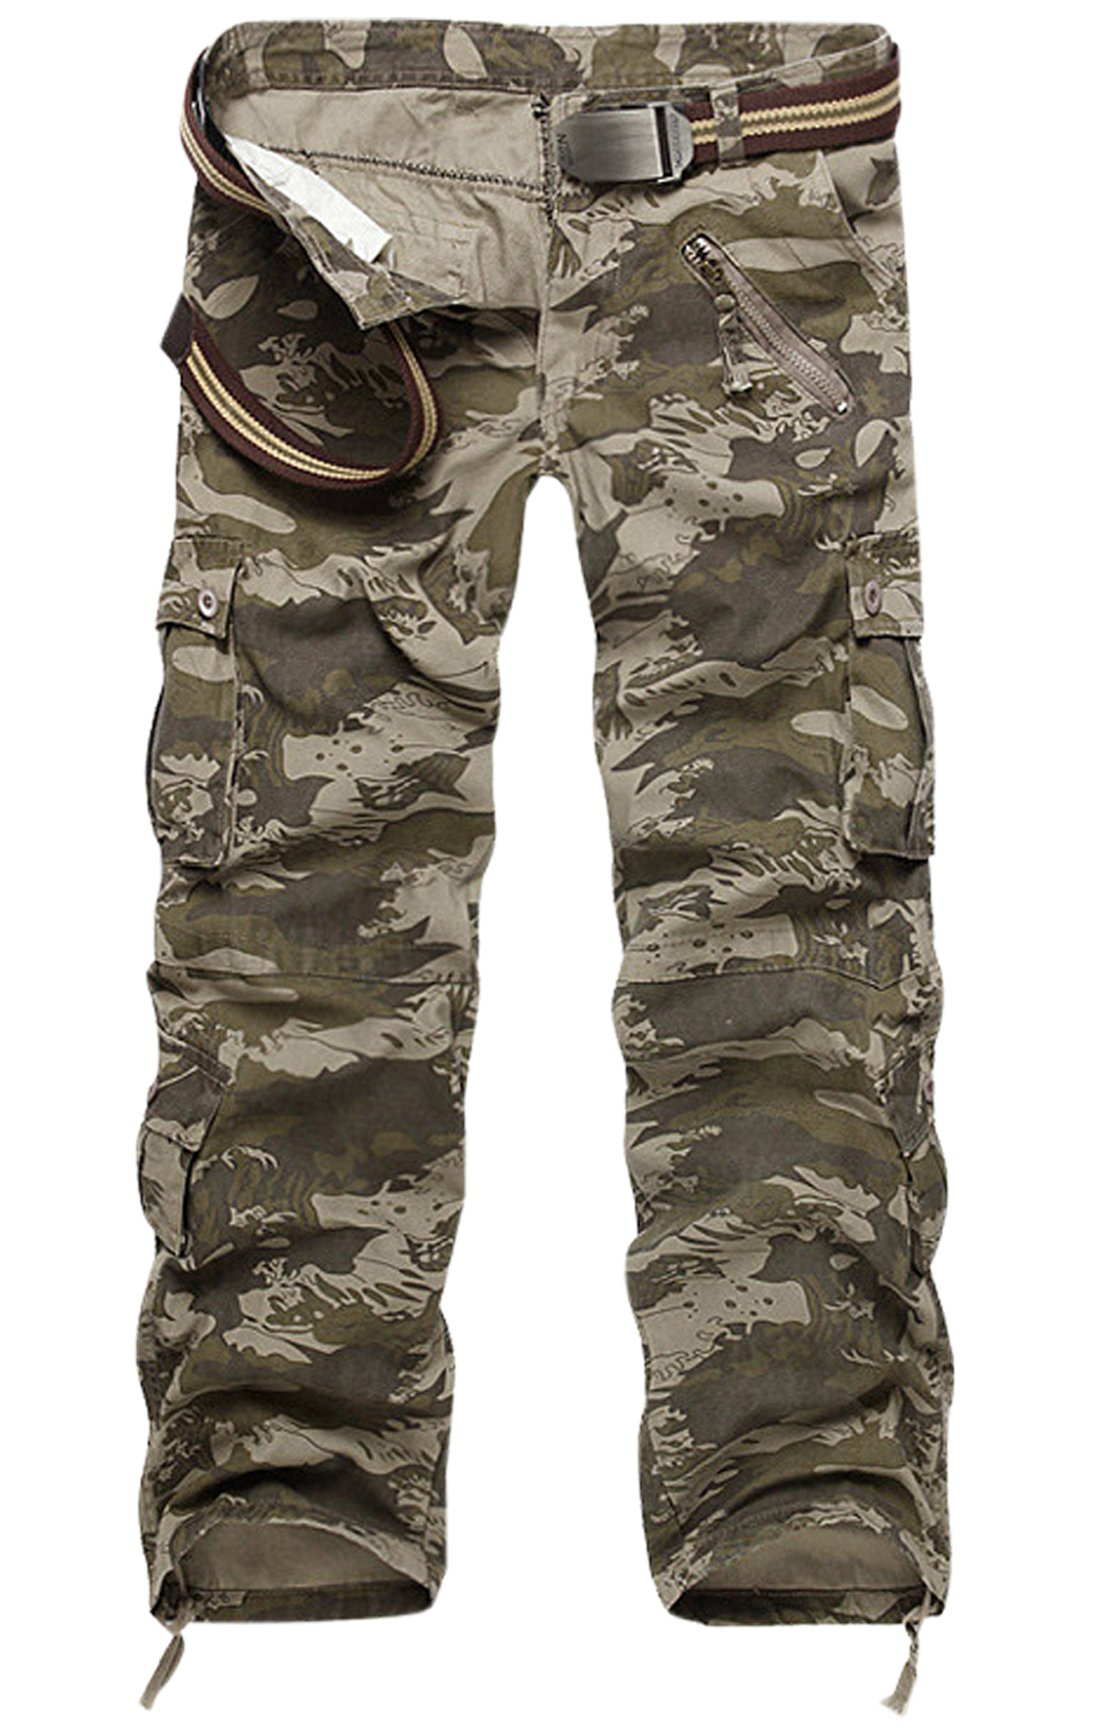 Gihuo Men's Casual Cotton Tactical Military Cargo Pants (34, Wave Camo)